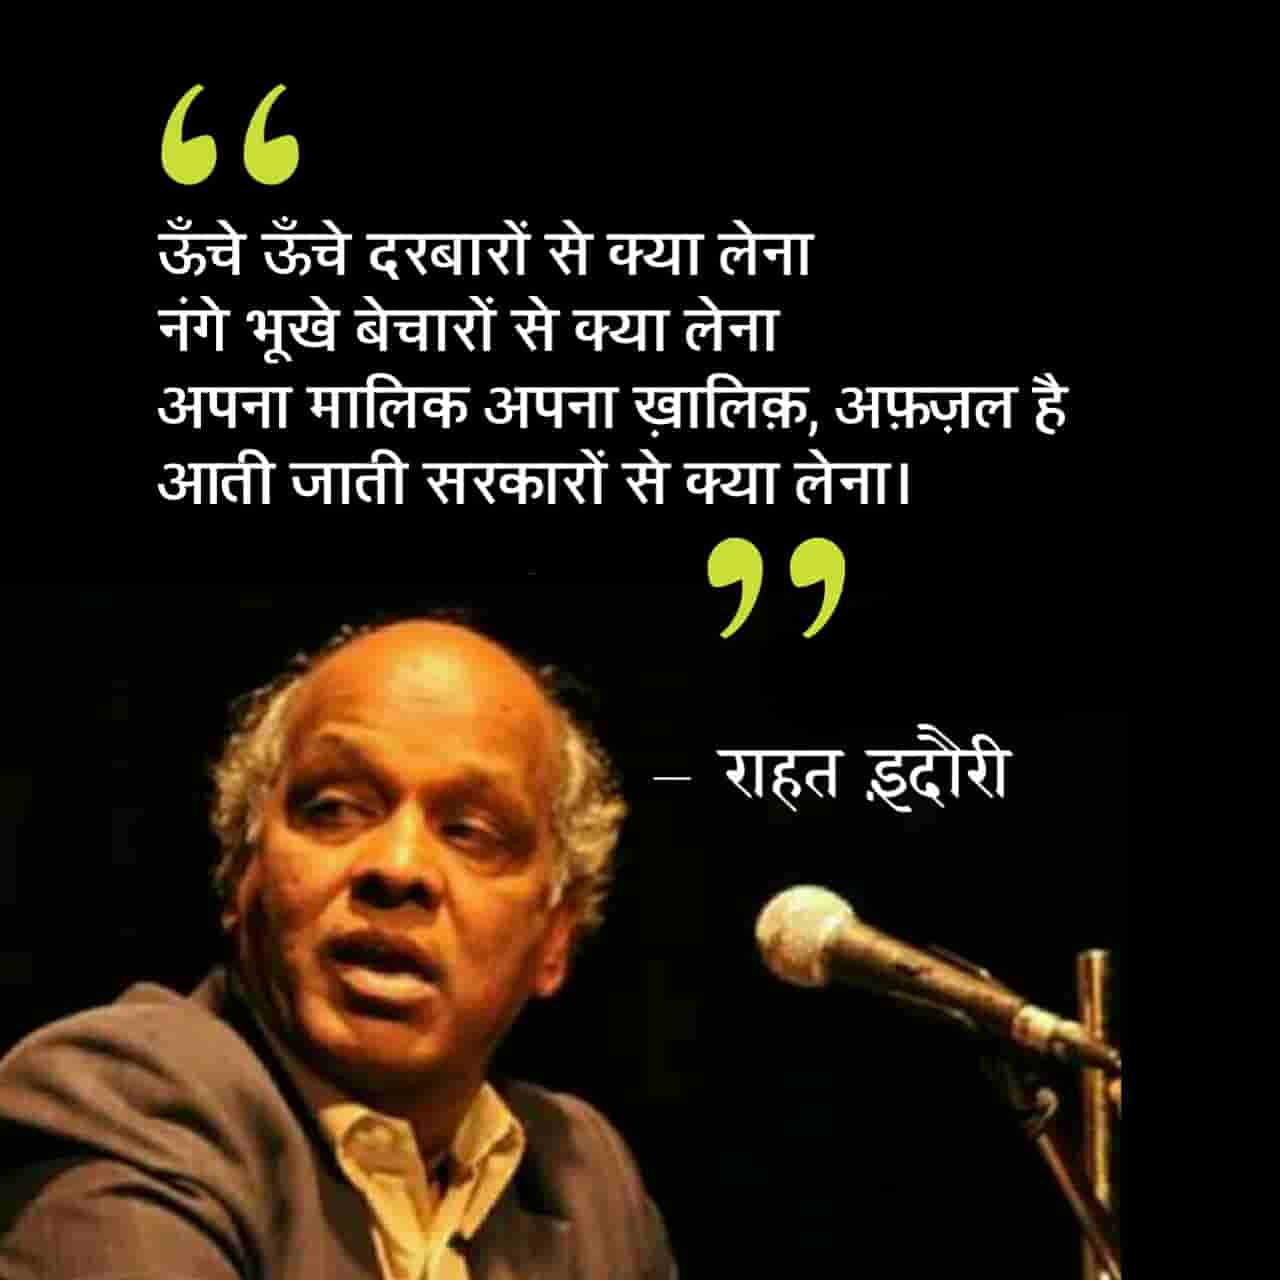 This beautiful ghazal 'Aati Jati Sarkaaron Se Kya Lena' has written and performed by Dr. Rahat Indori.